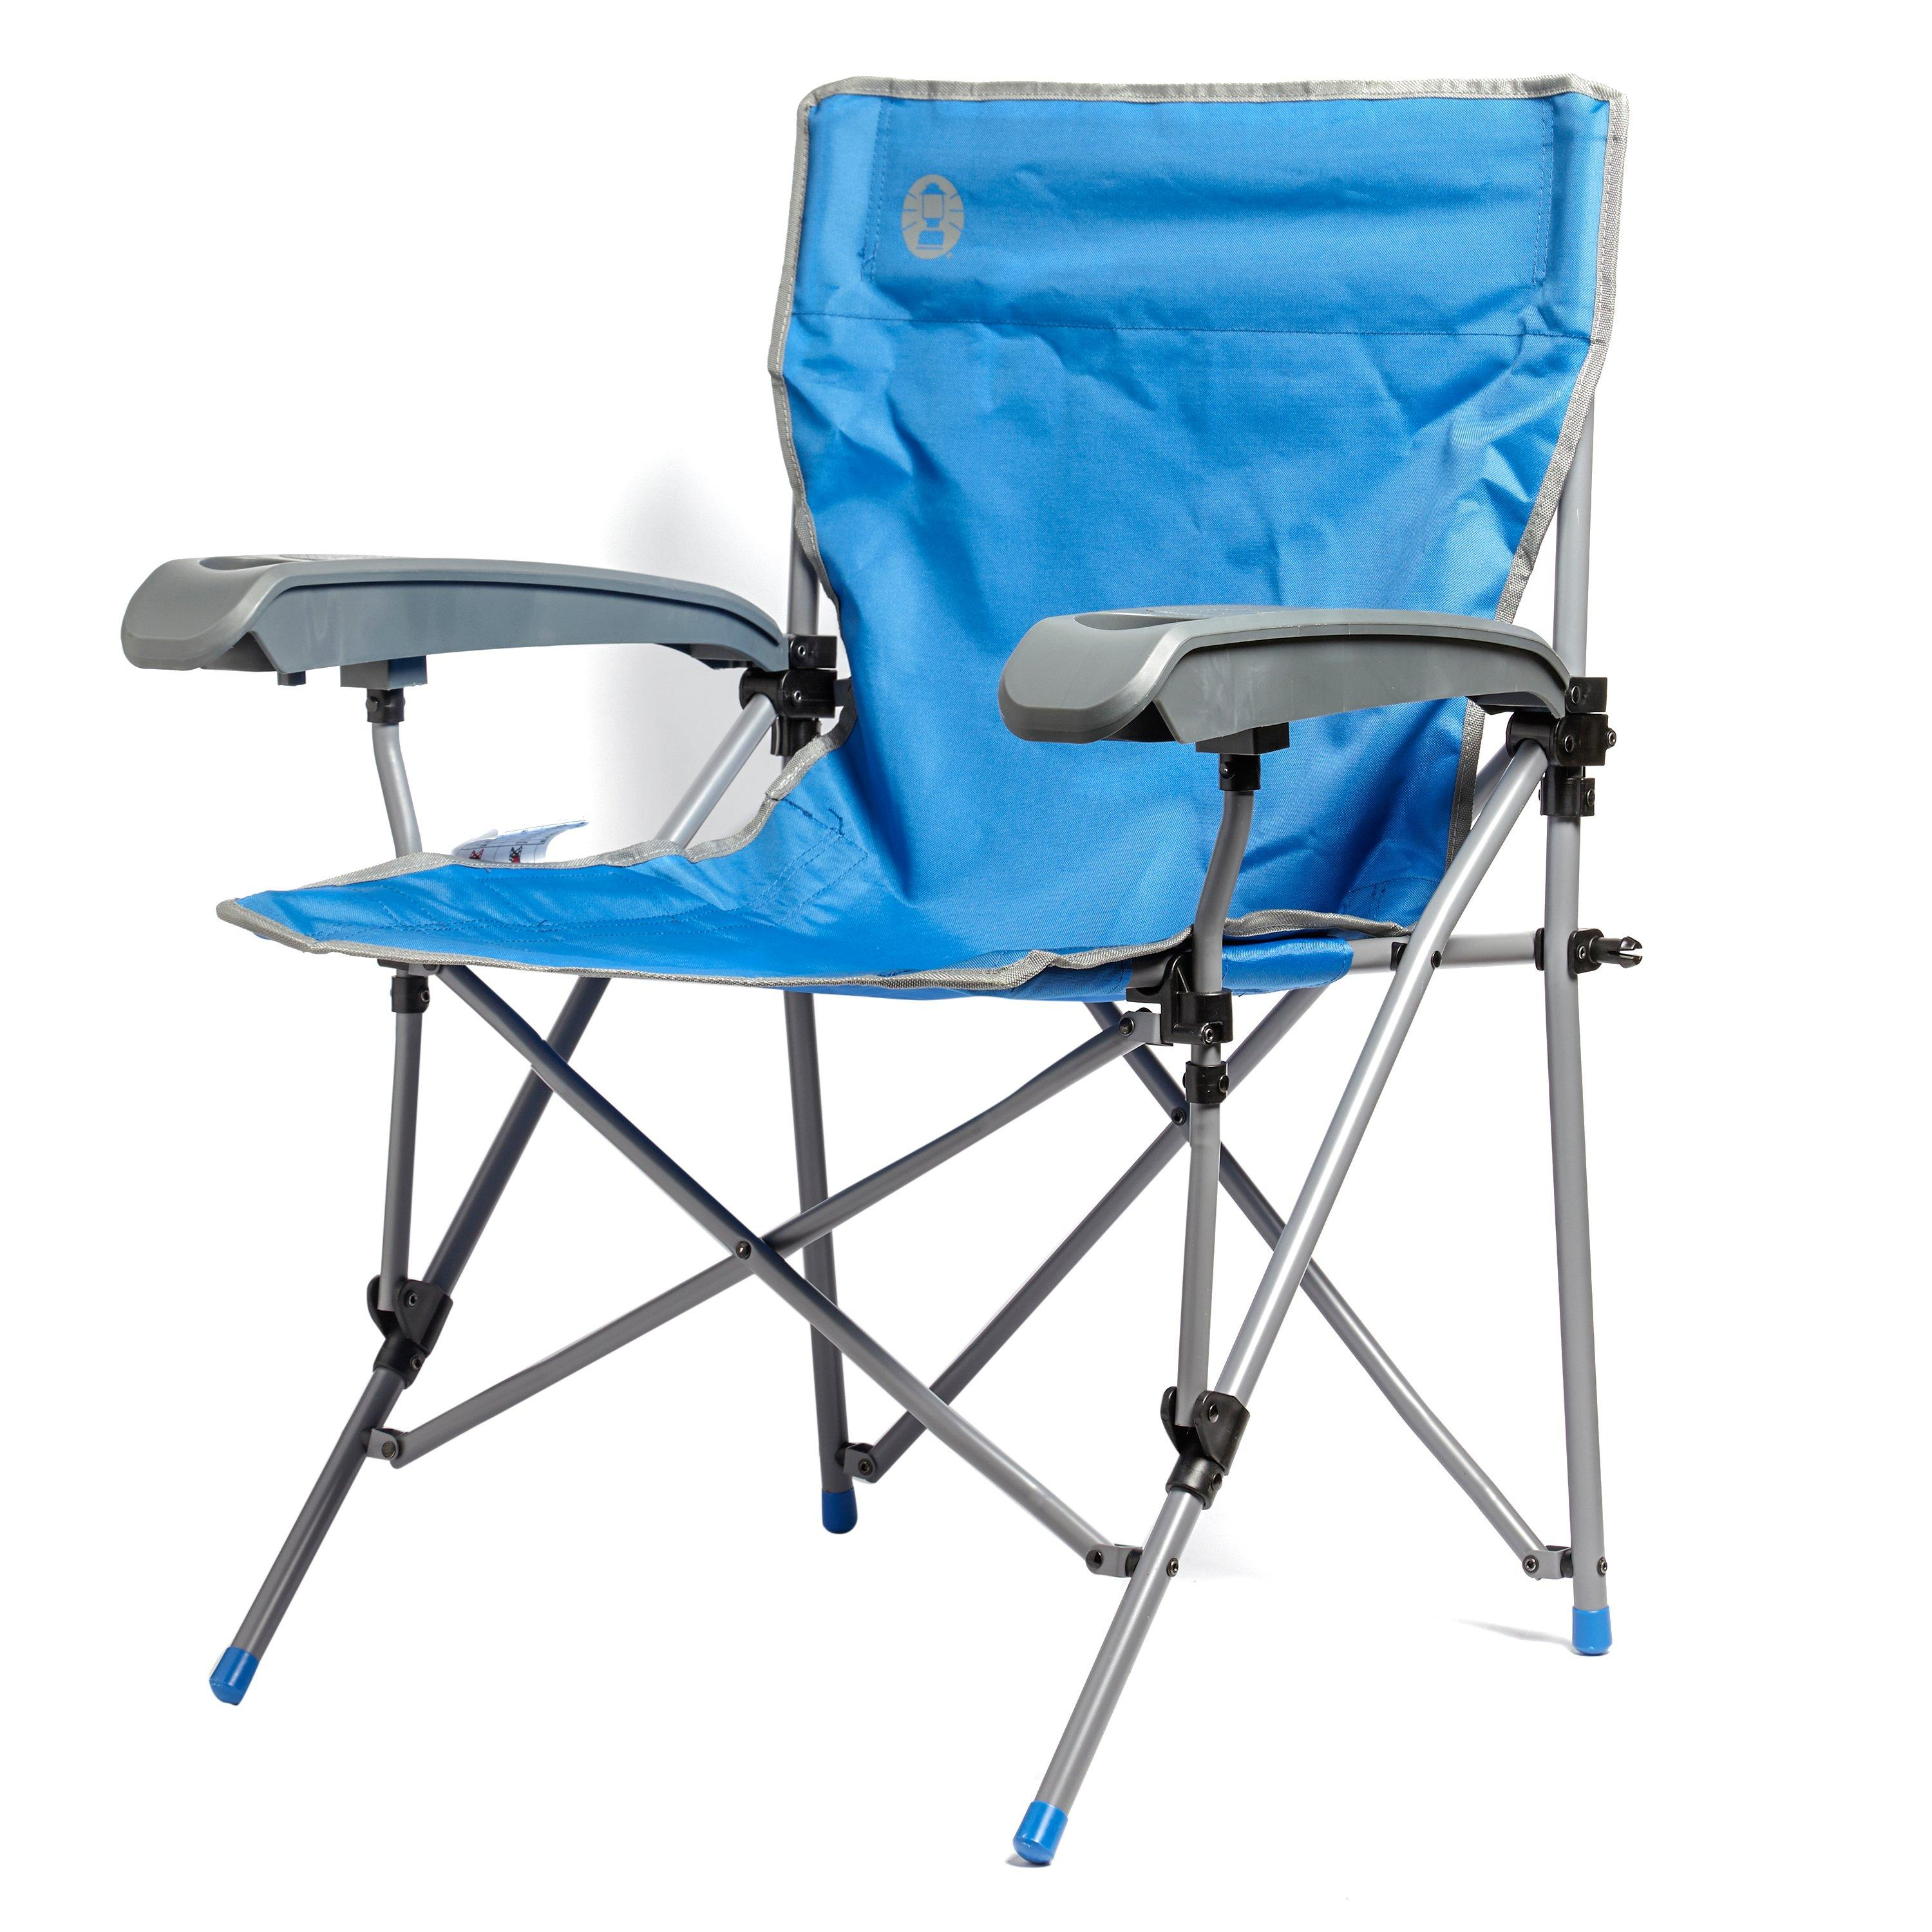 steel chair price in patna folding office uk shop for cheap products and save online